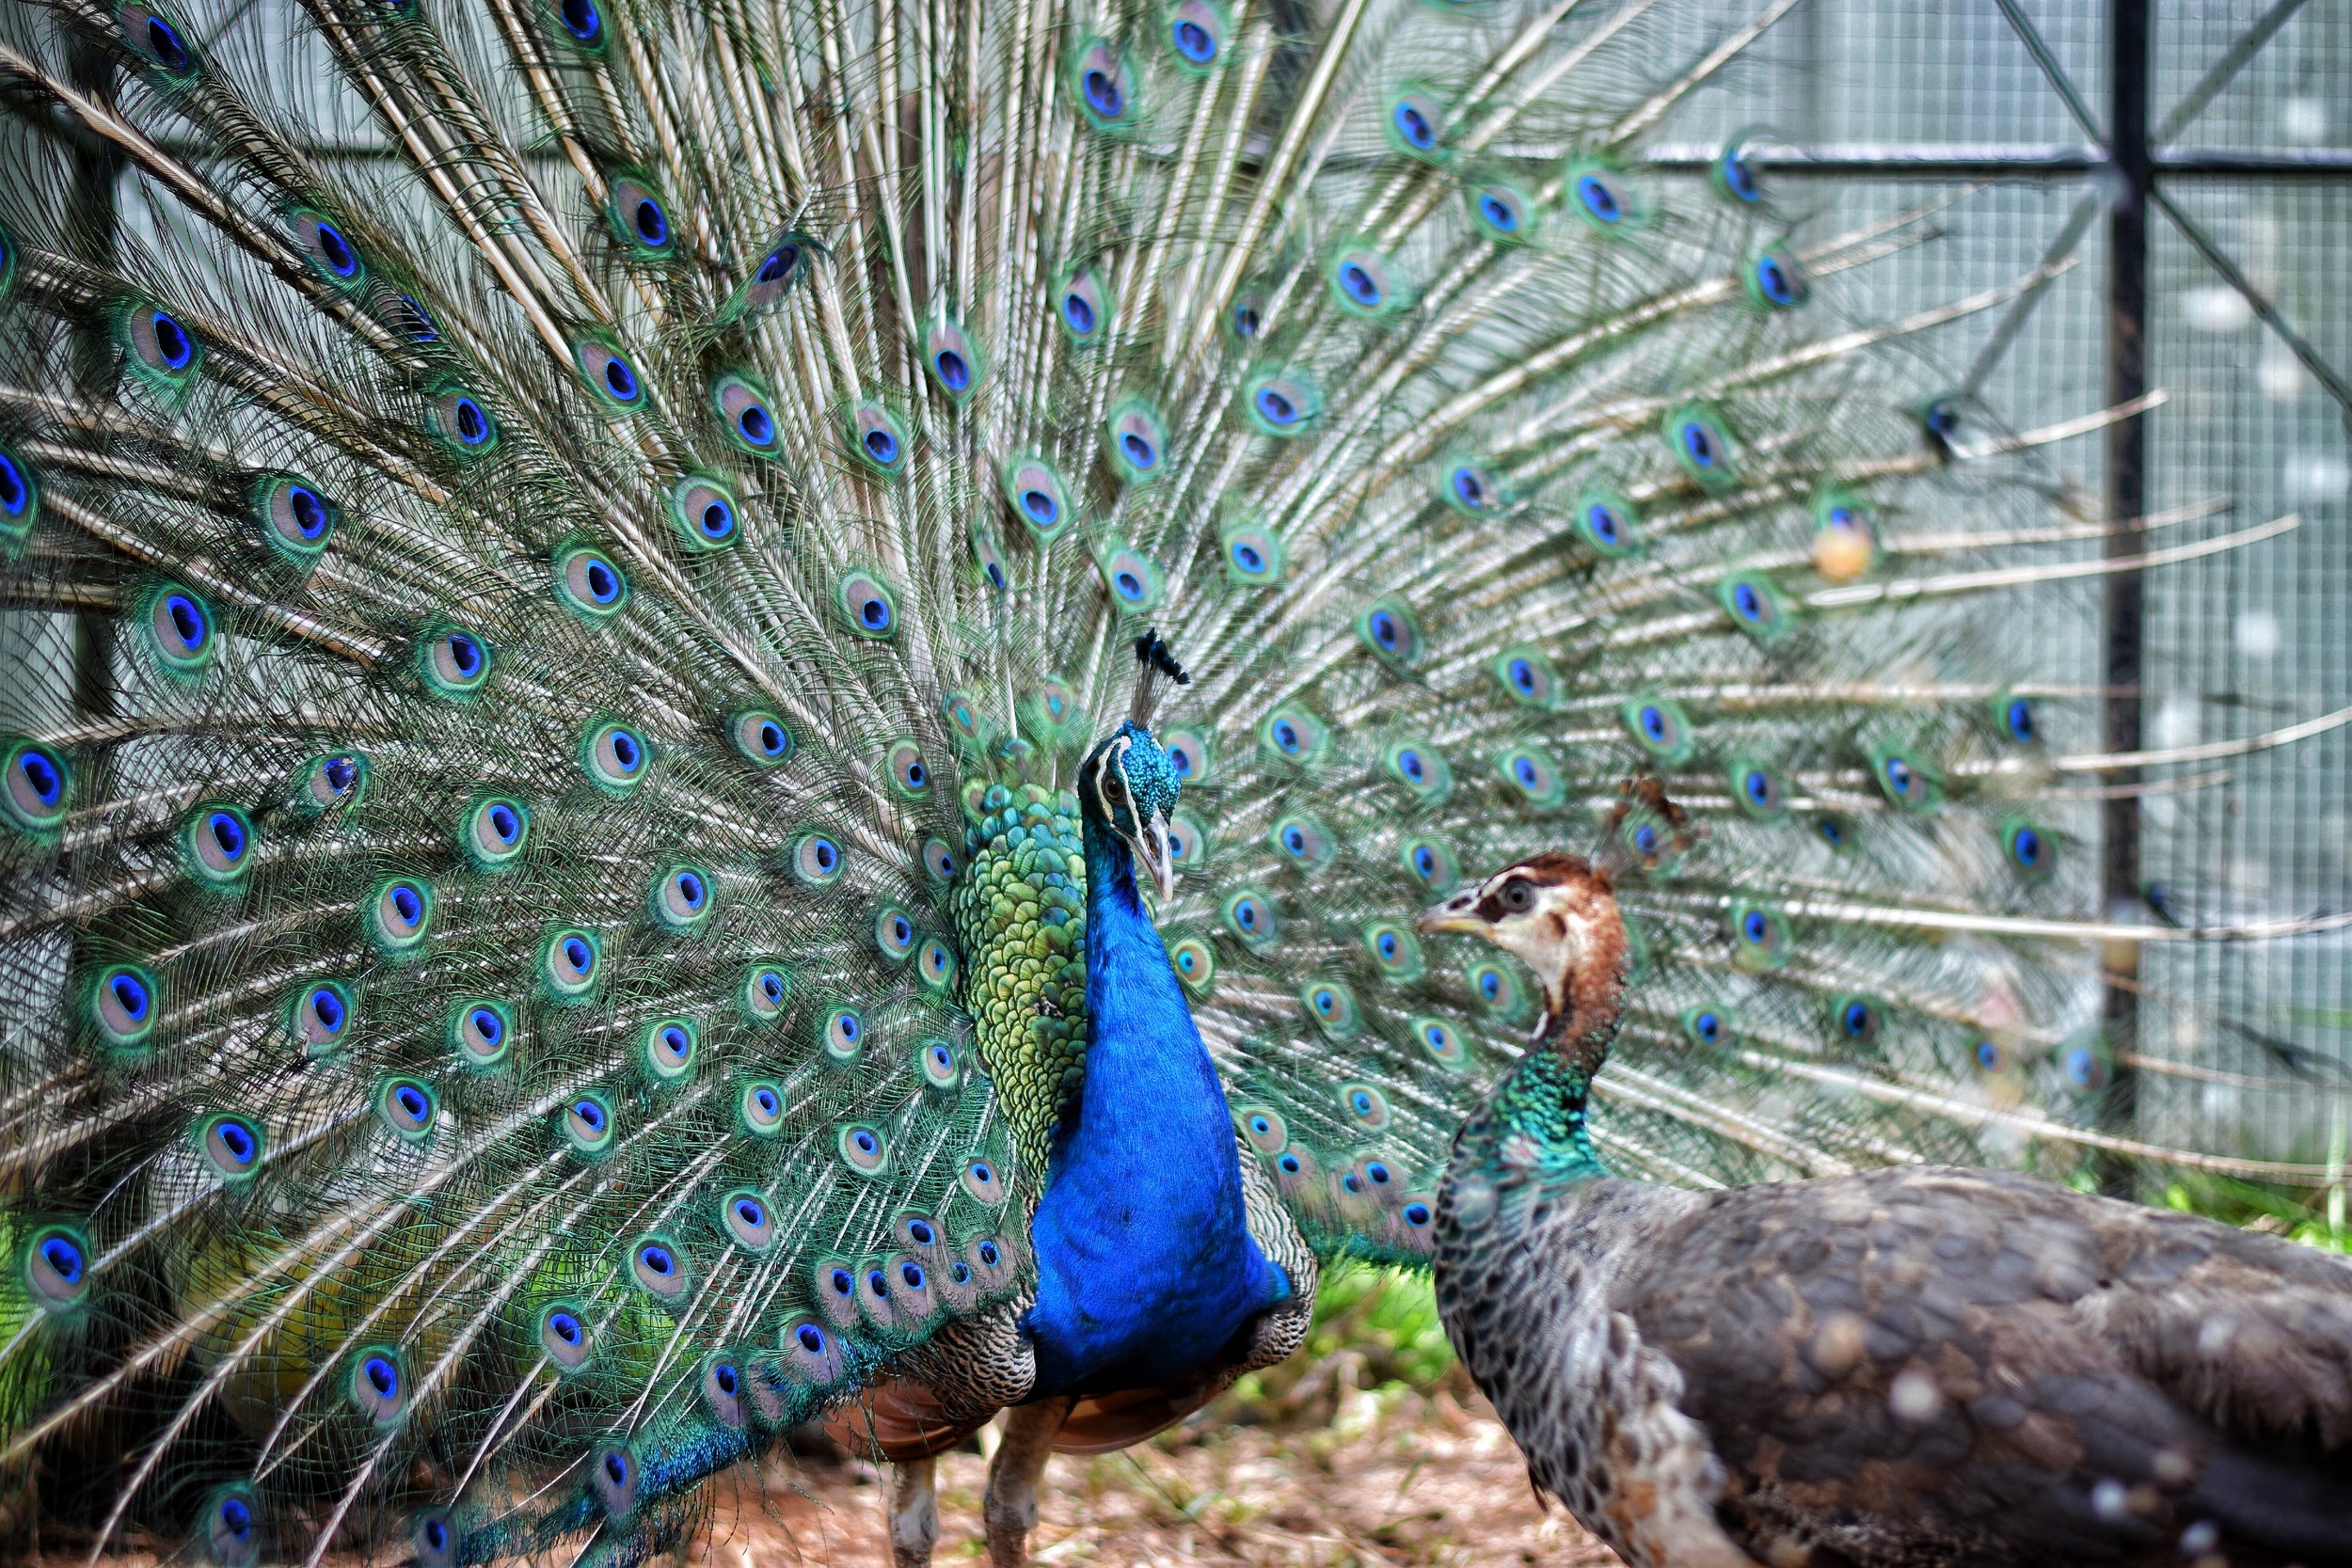 """@taychin_olwcw Look - a peacock giving zero shits about showing it's authentic wears to its prospective market. No faux humility here. """"What these old things? Oh they're nothing"""". Entirely appropriate display."""